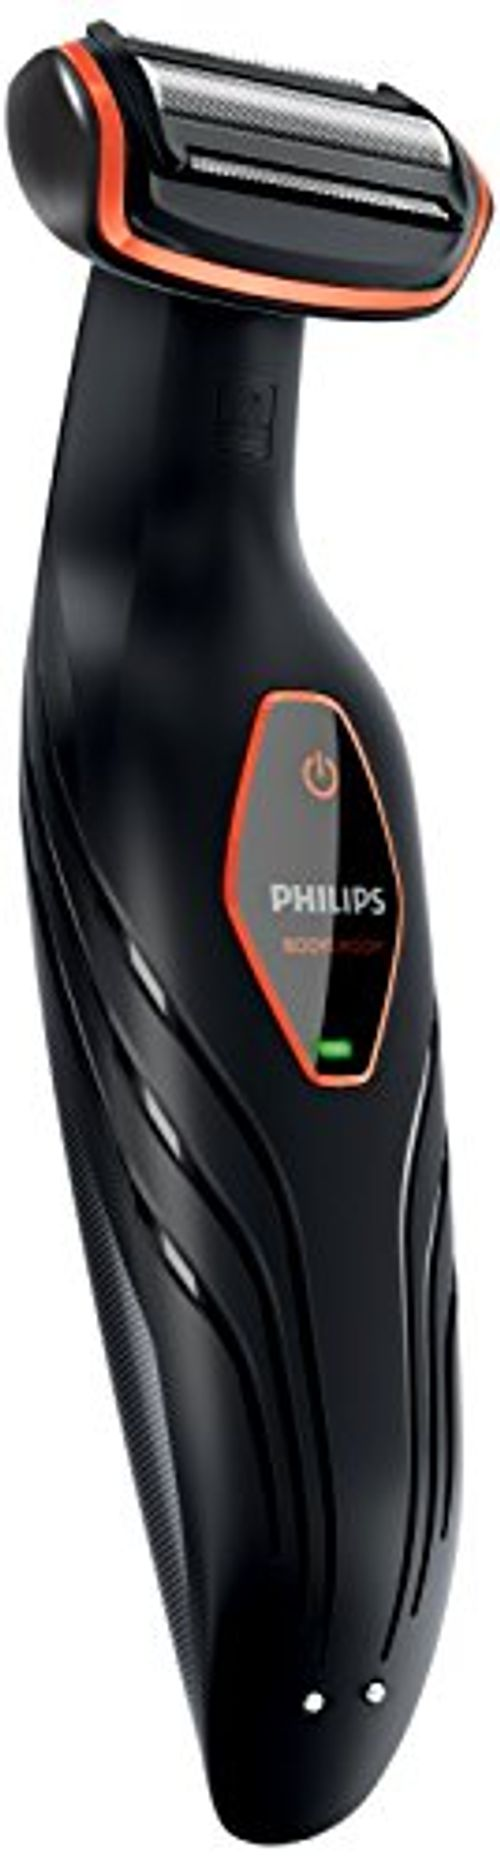 photo Wallpaper of Philips-Philips BG2024/15   Afeitadora Corporal Sin Cable, 1 Peine, 3 Mm, Color Negro-Negro Y Naranja